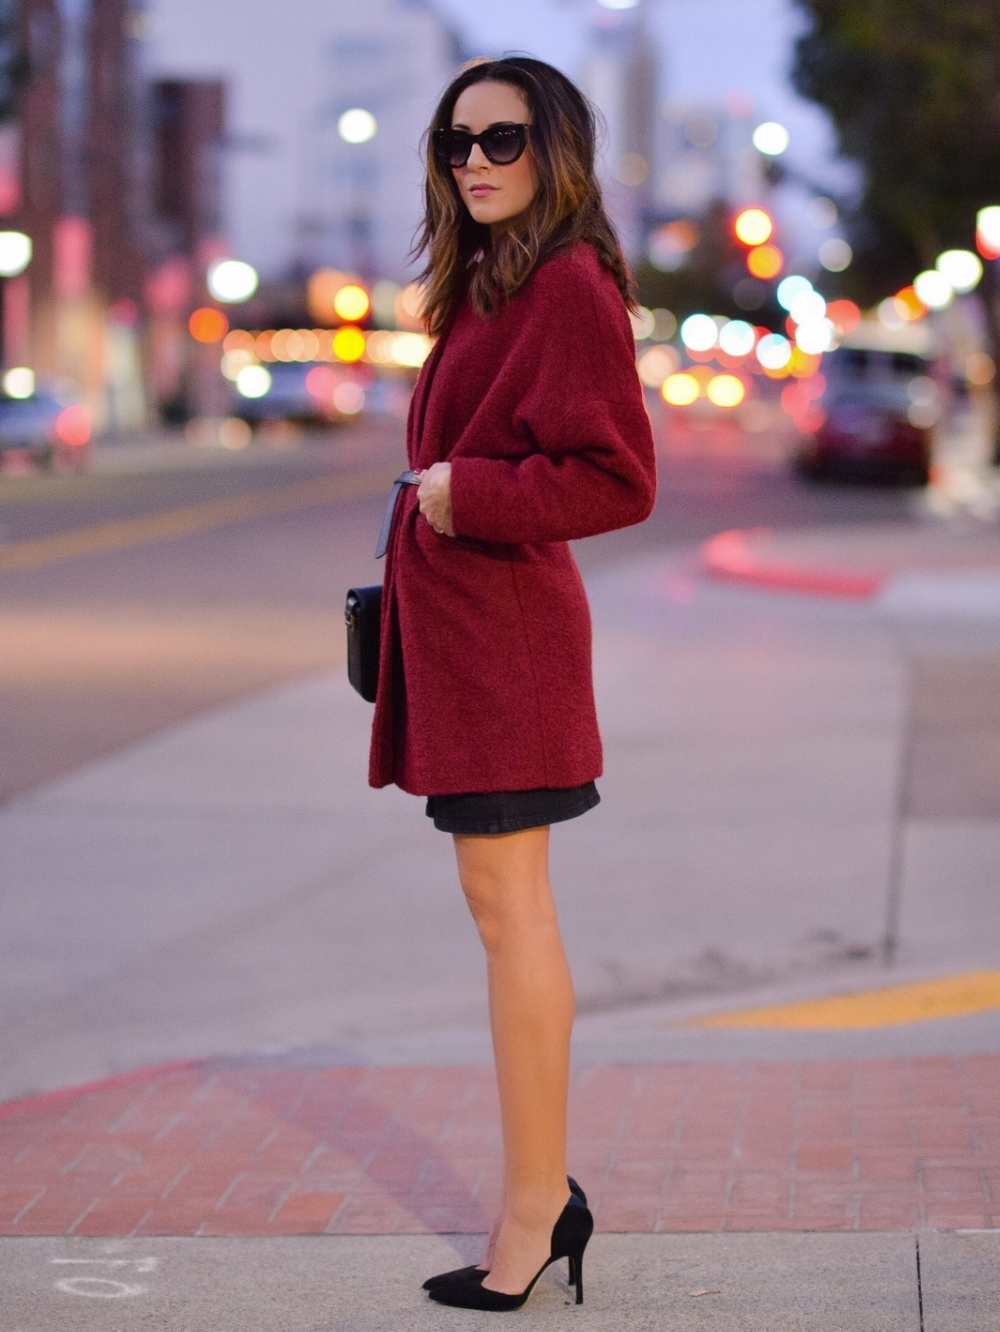 Topshop_Coat_Fashion_SaintLaurent_SanDiego_Streetstyle_LucysWhims.jpg